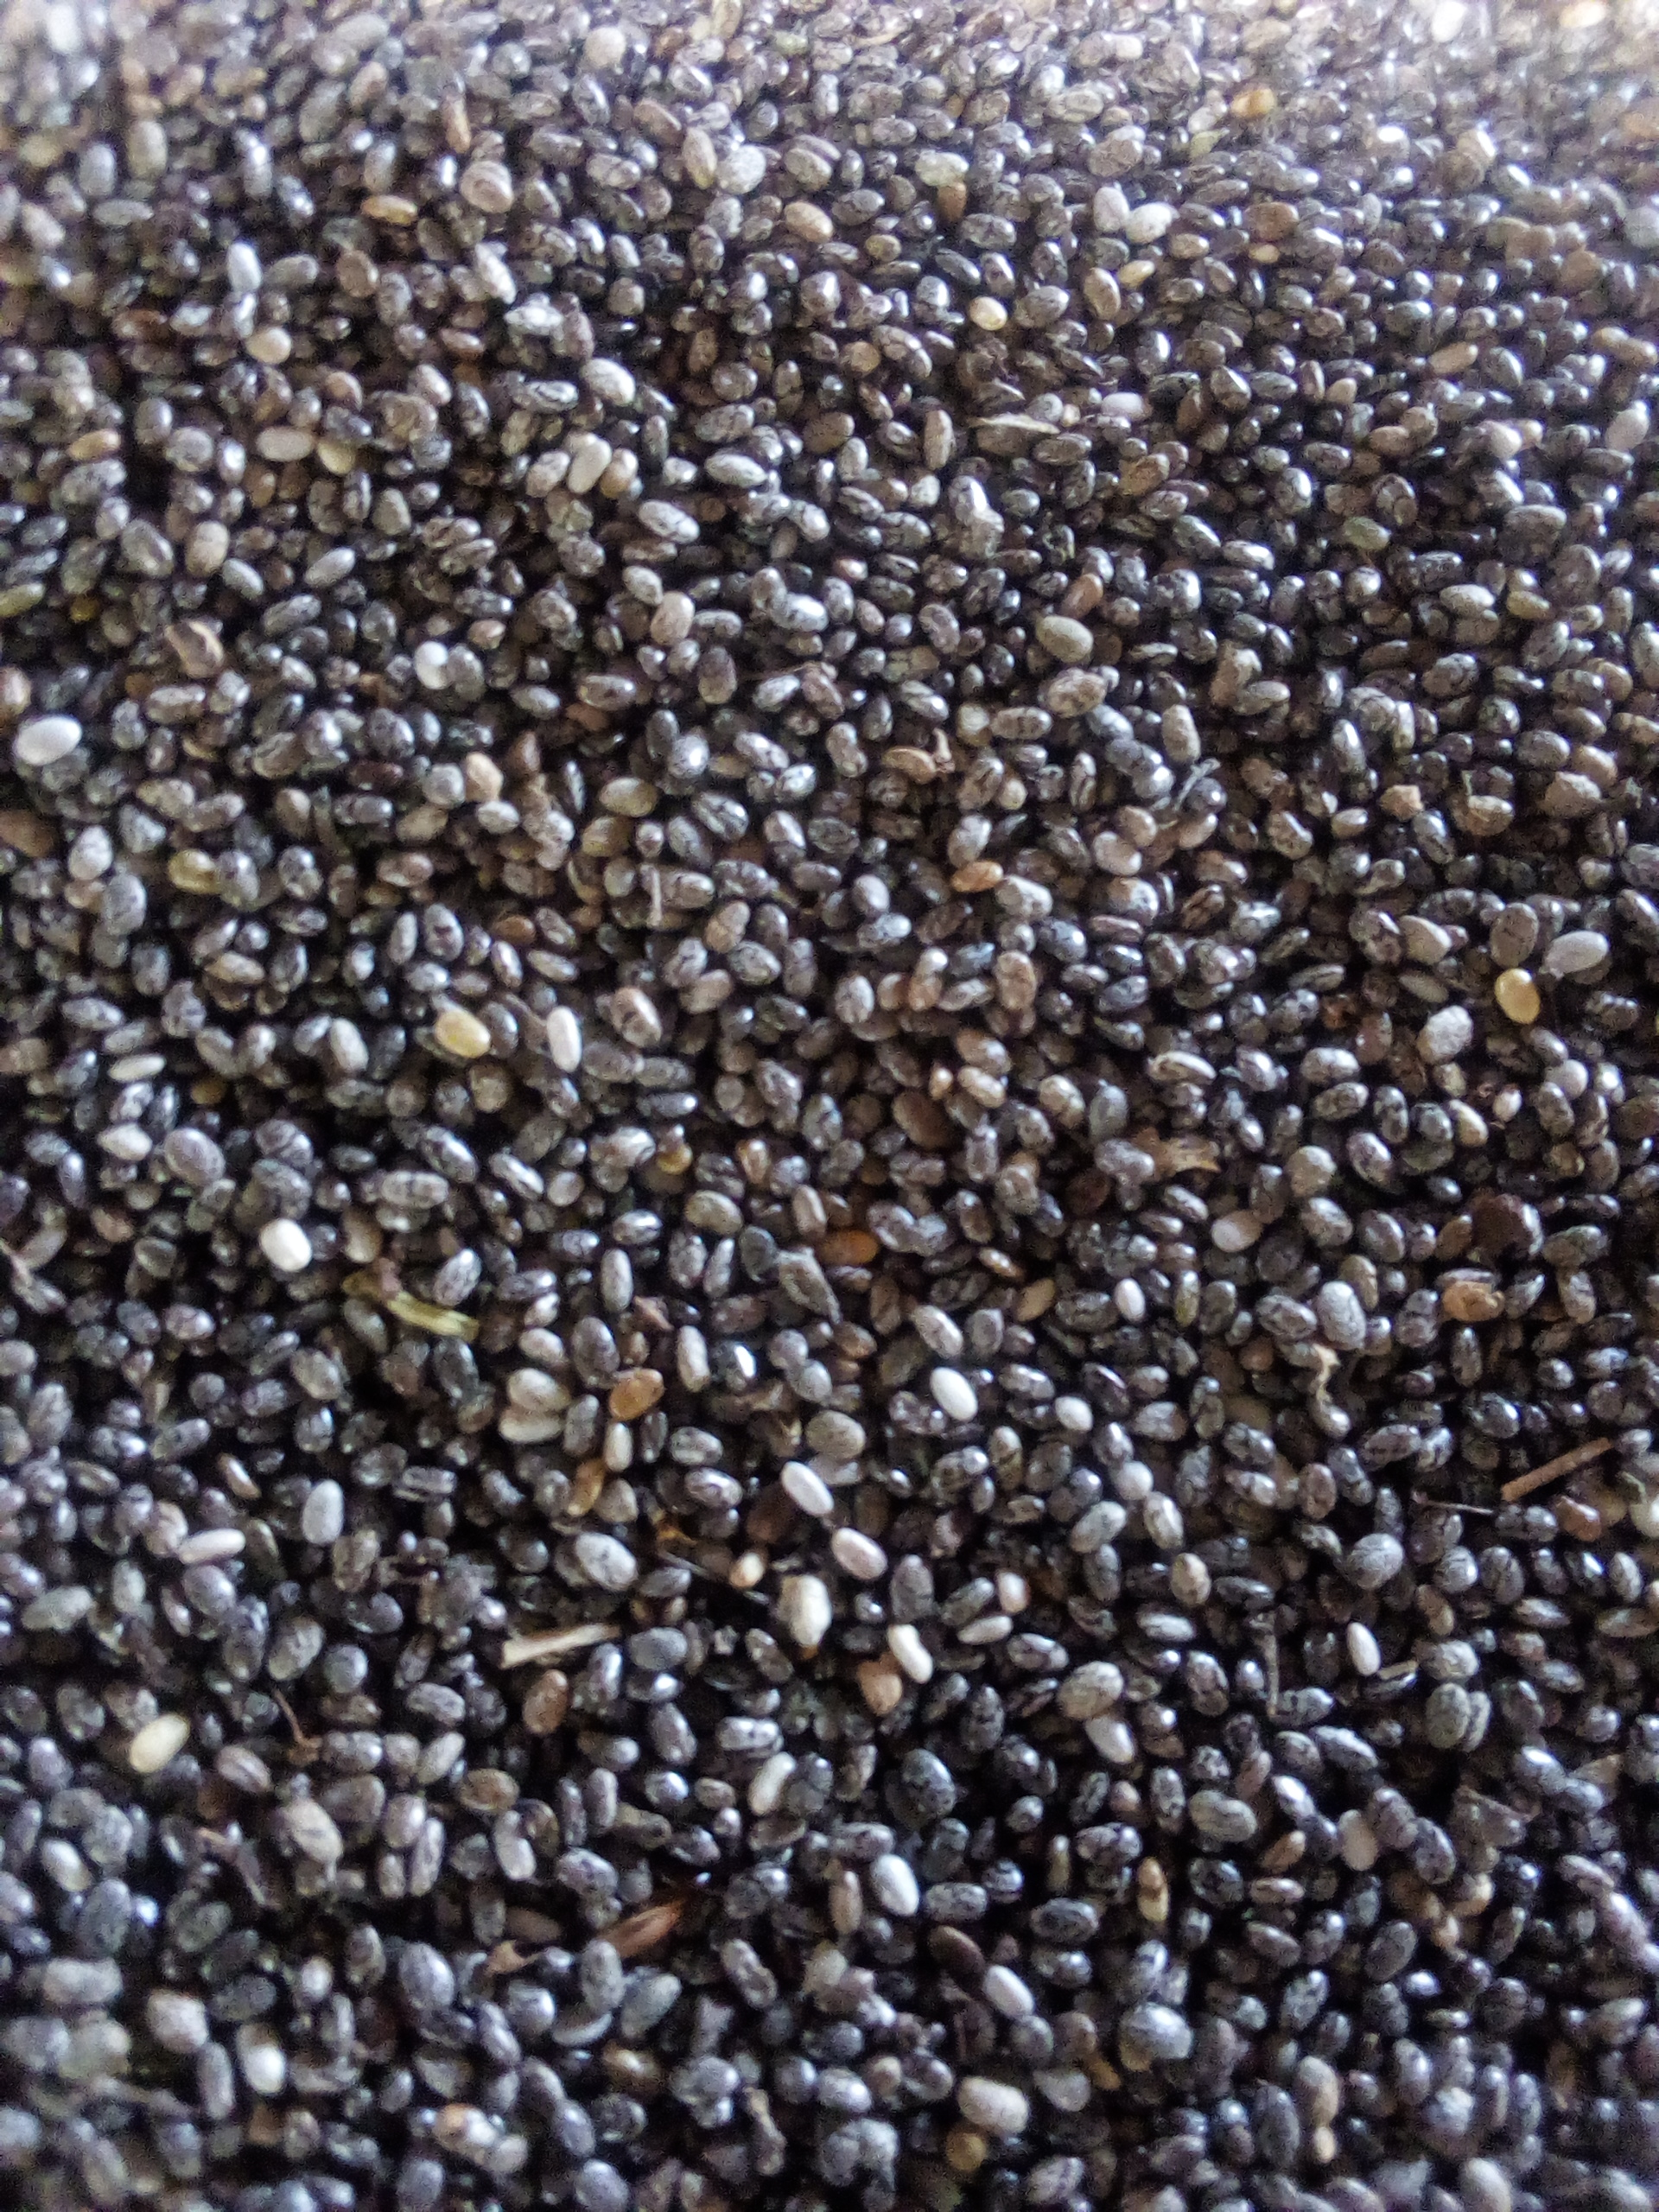 Chia seeds produce (1 metric tonne)